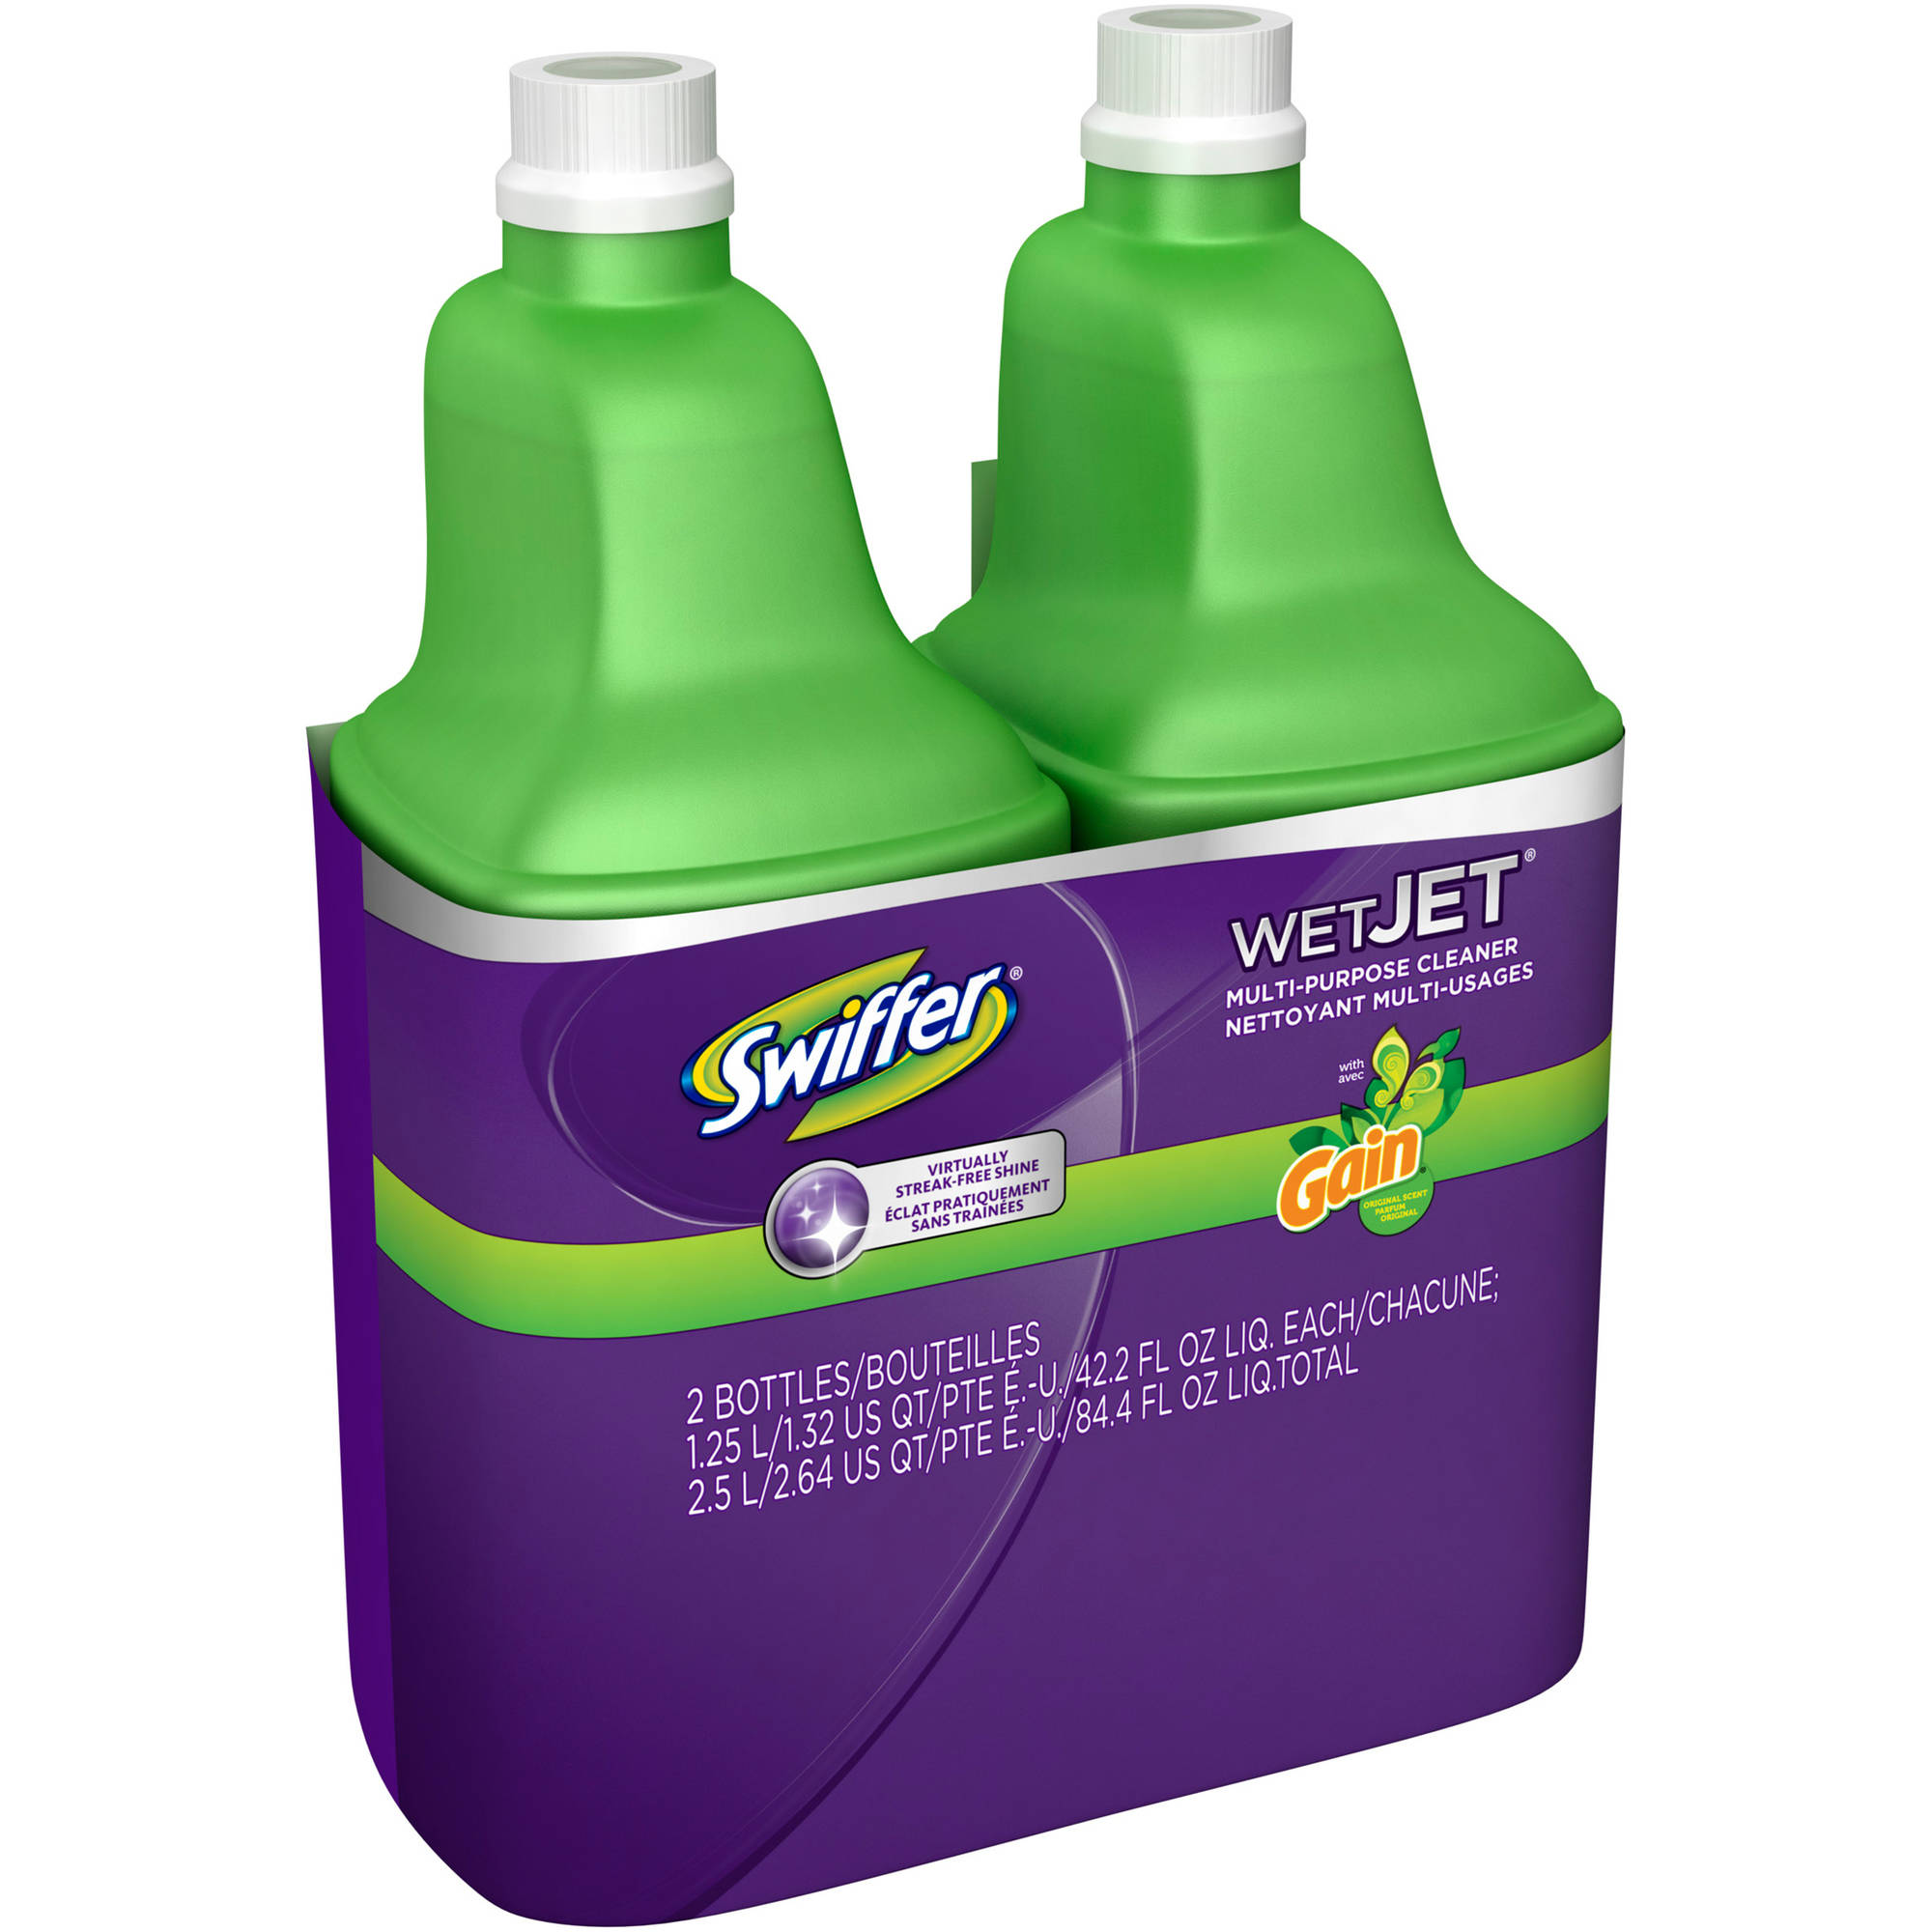 Swiffer WetJet Multi-Purpose Cleaner with Gain Scent, 42.2 fl oz, (Pack of 2)